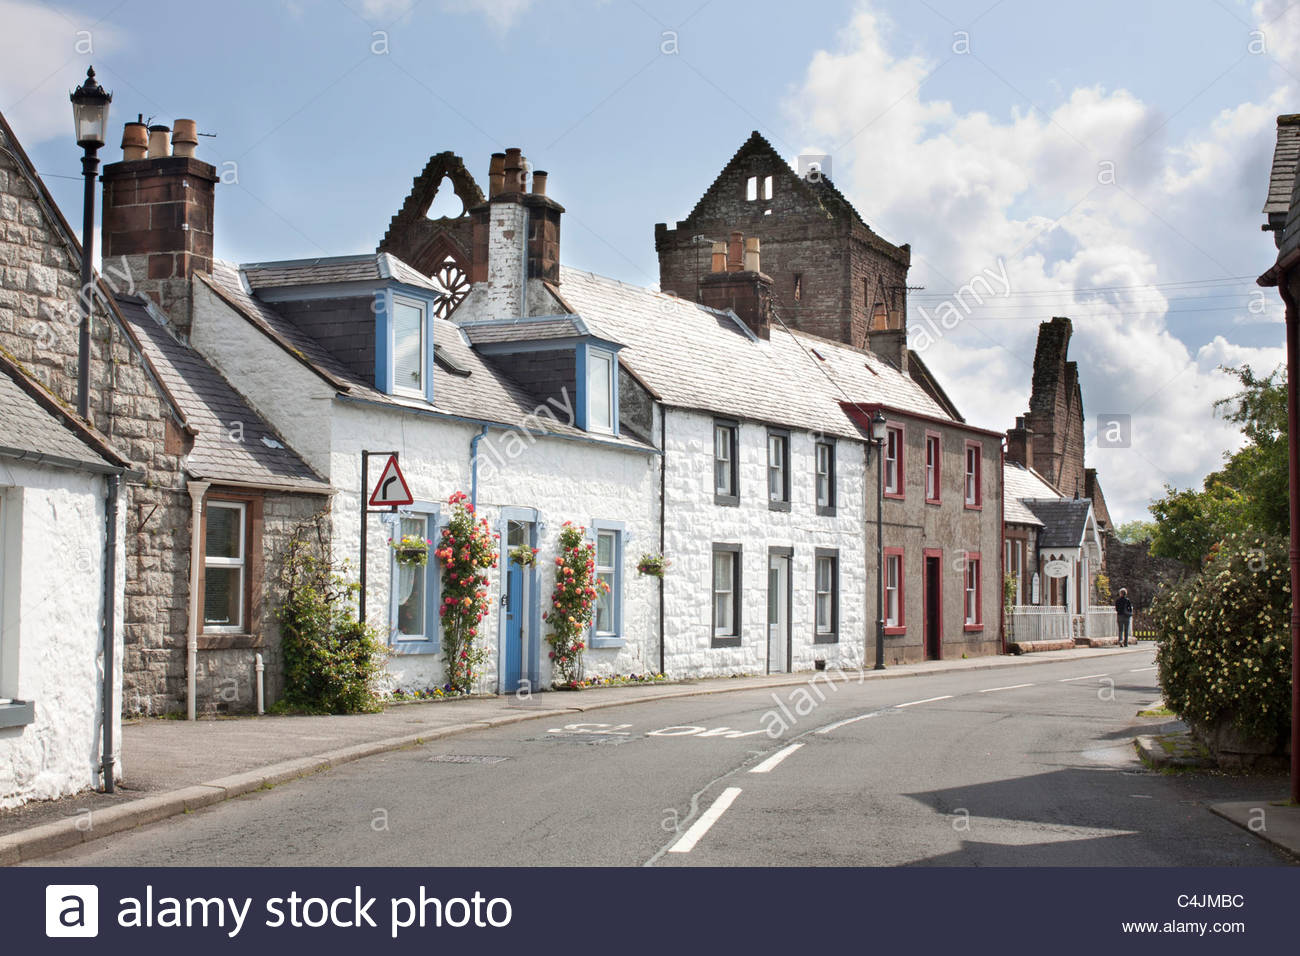 Property For Sale Dumfries And Galloway